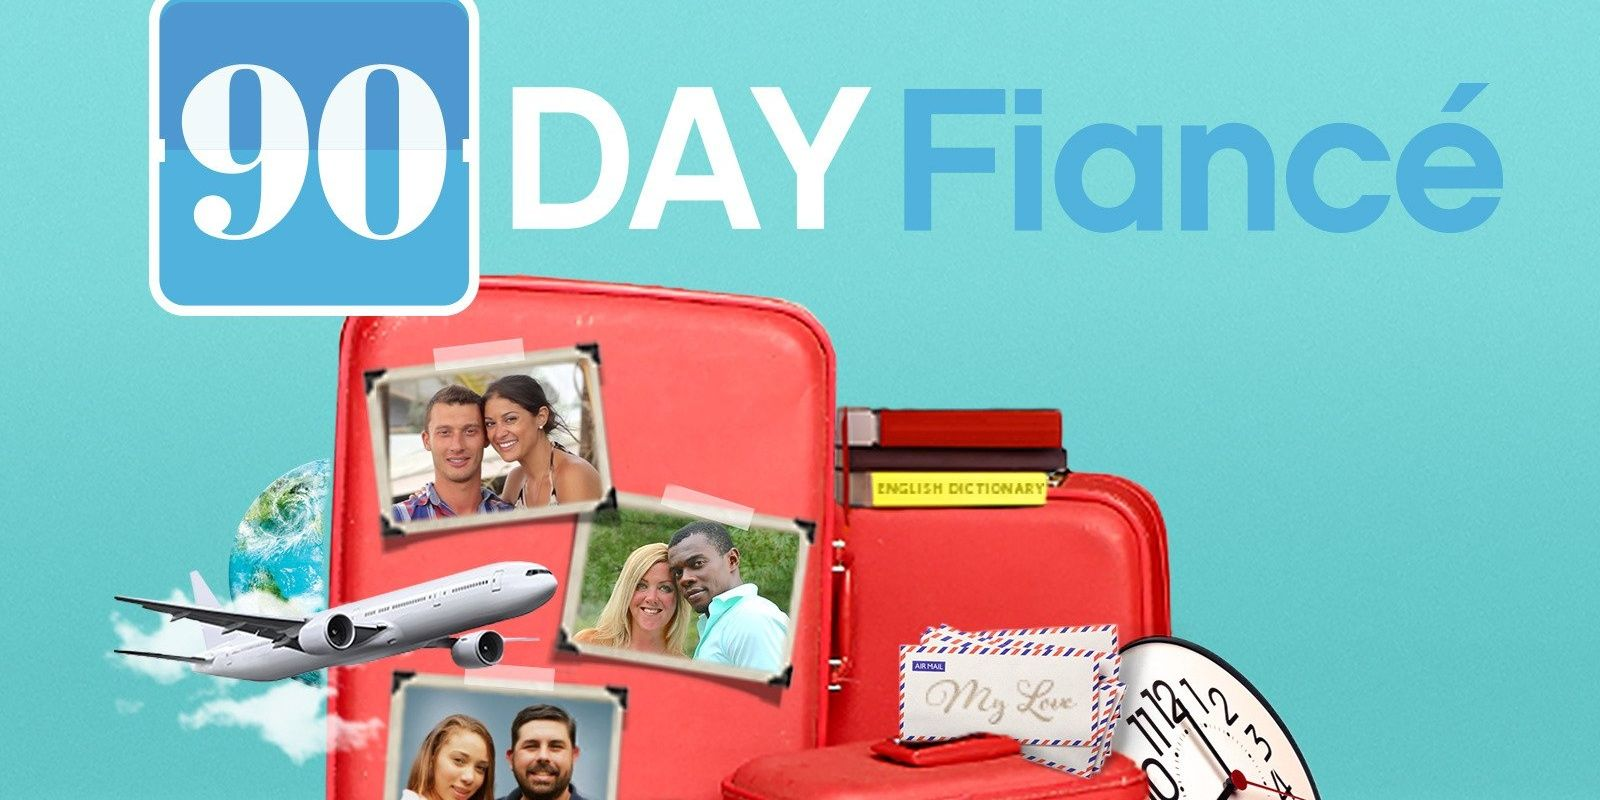 90 Day Fiancé: All Shows/Spin-Offs Still Missing From Discovery Plus